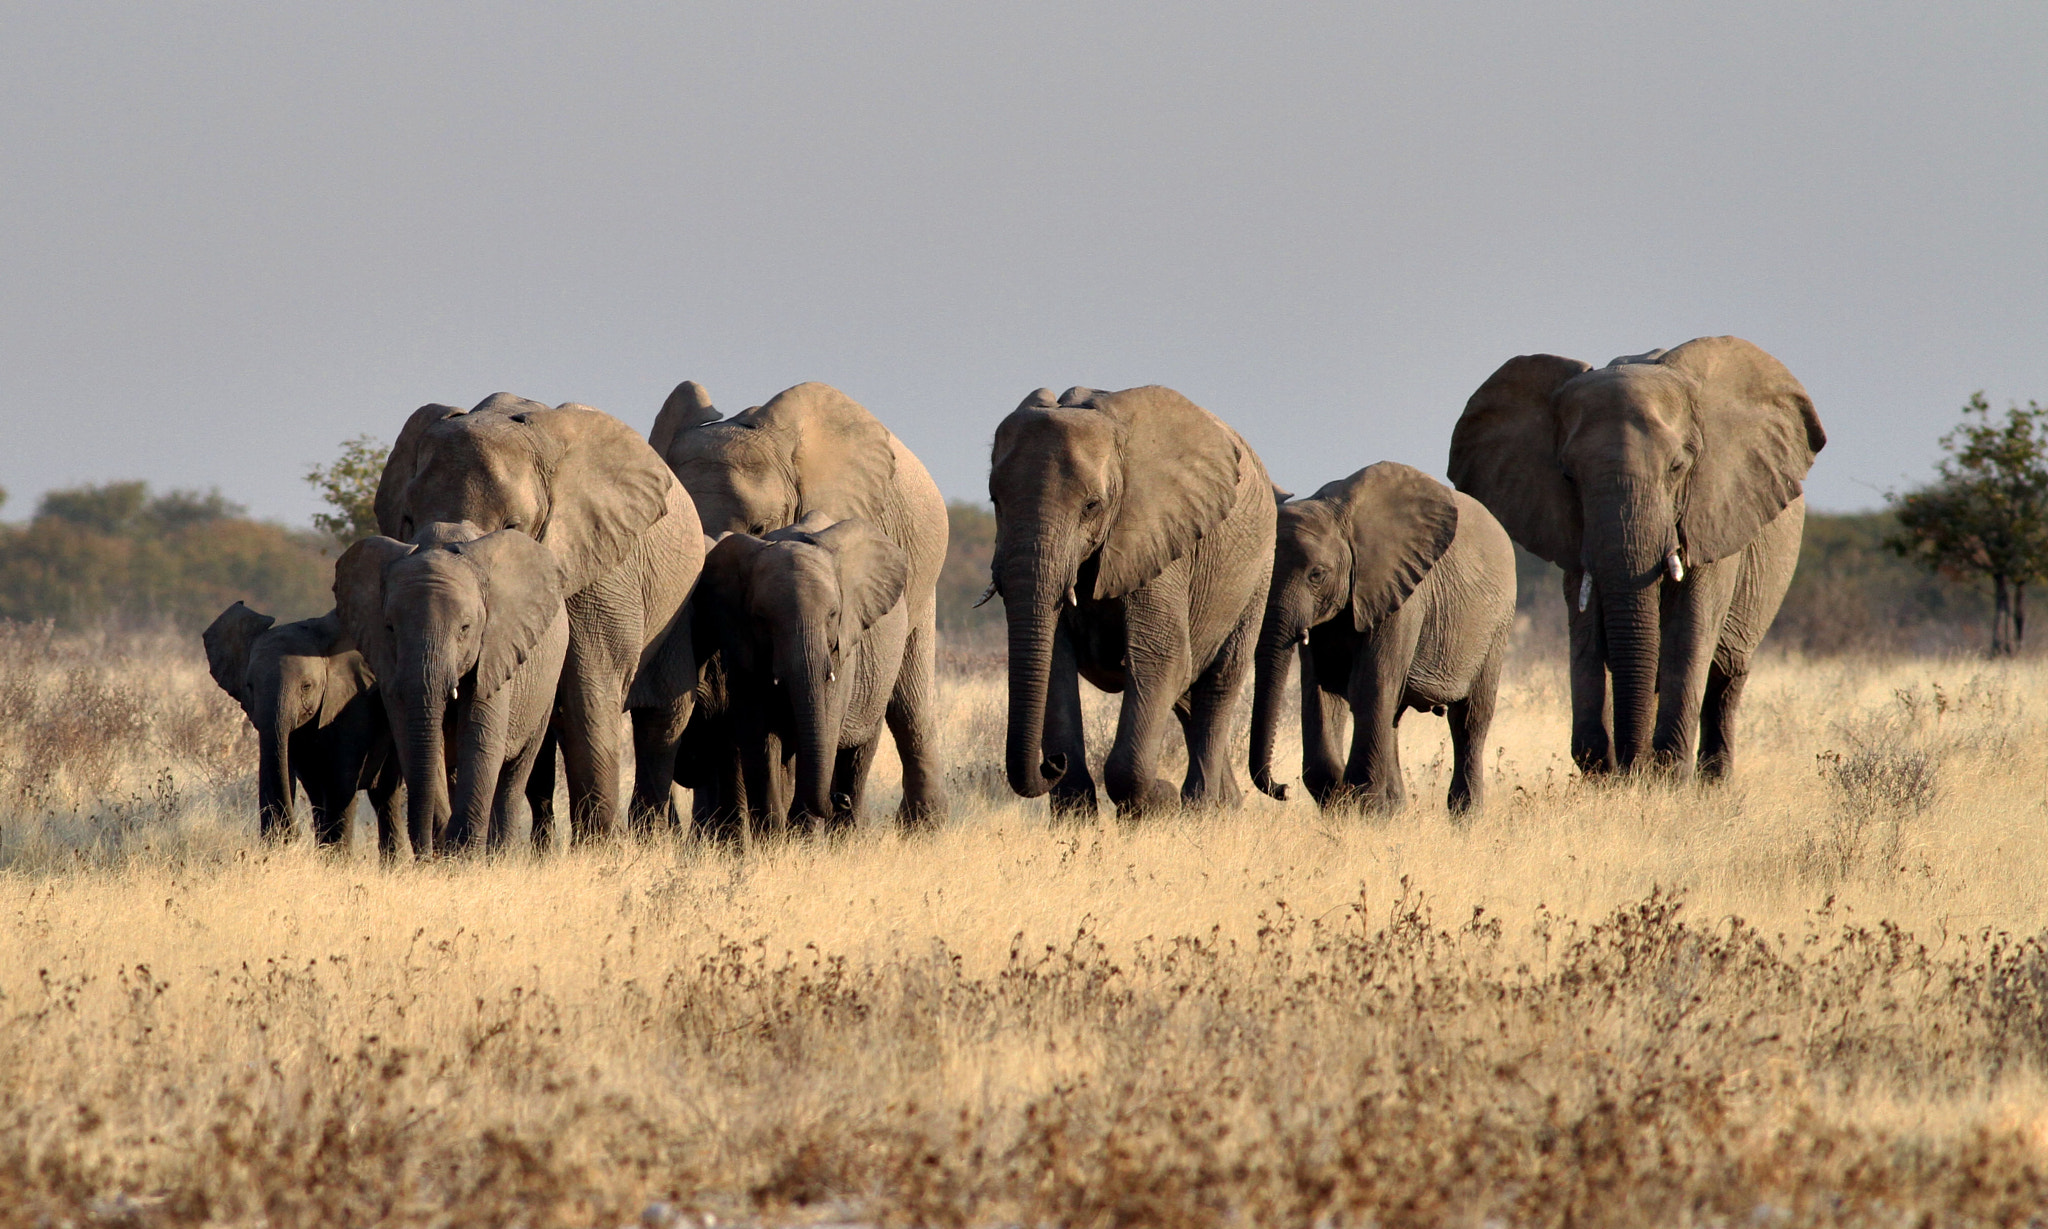 Photograph Ivory route by Ajay Bhoopchand on 500px